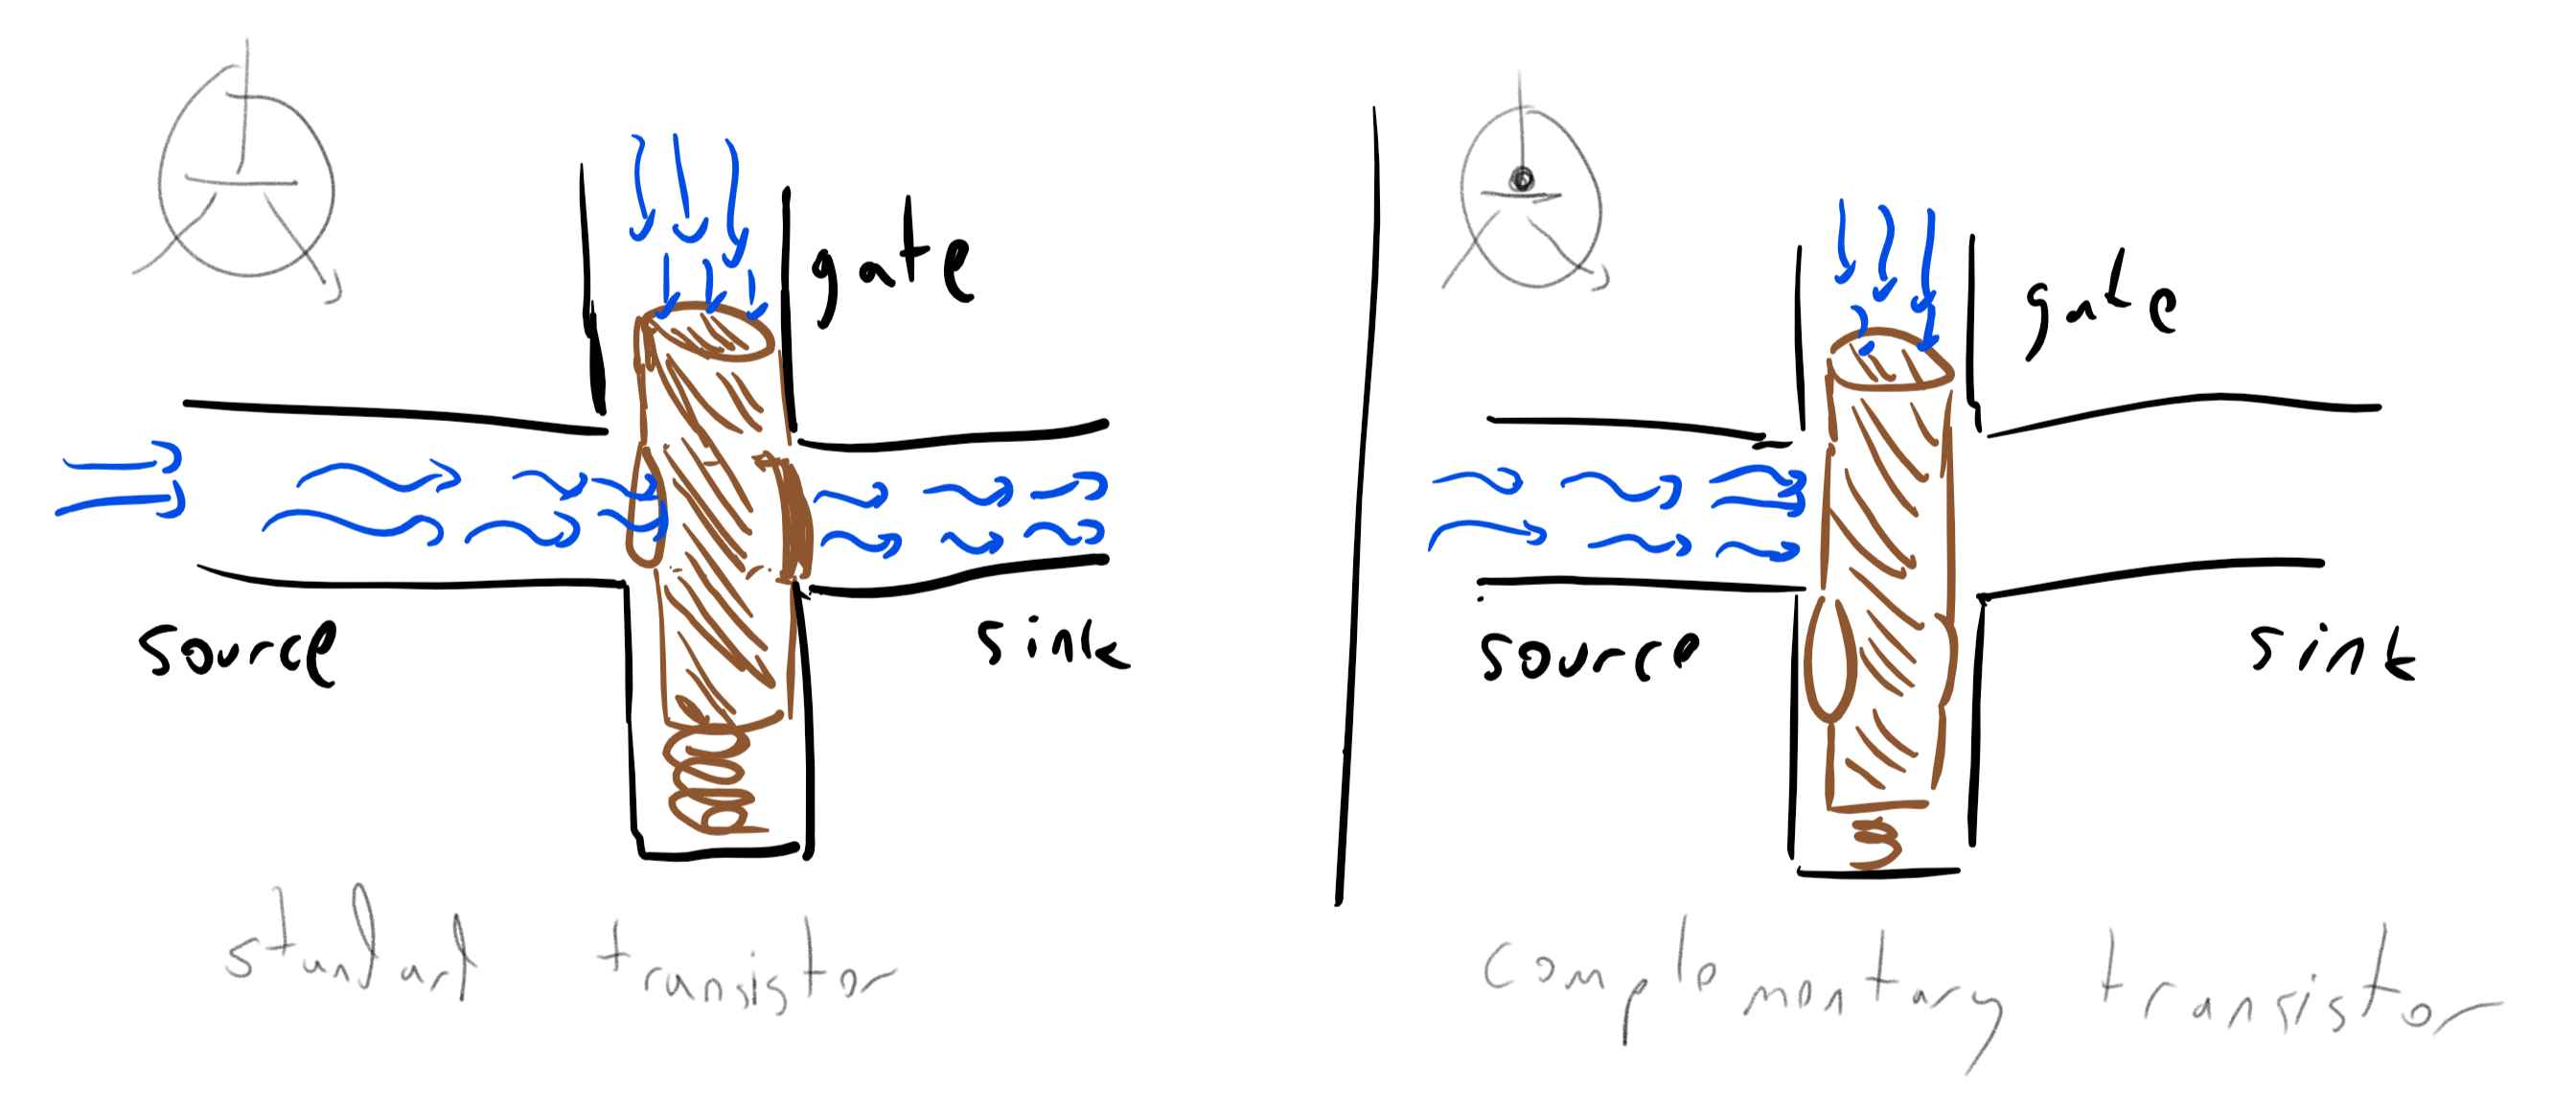 We can implement the logic of transistors using water. The water pressure from the gate closes or opens a faucet between the source and the sink.